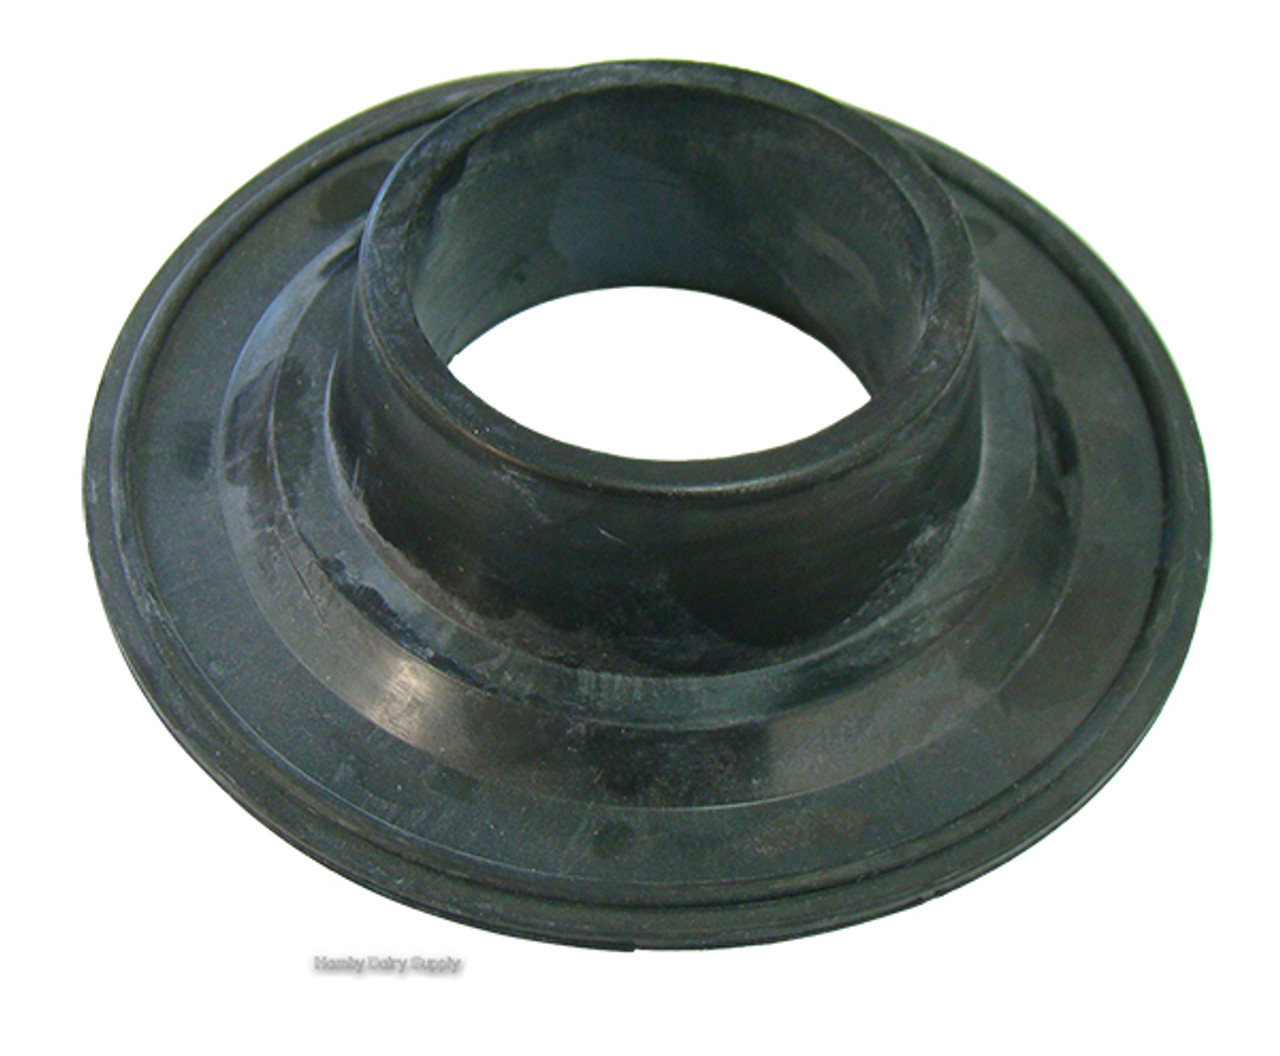 top rubber cap for